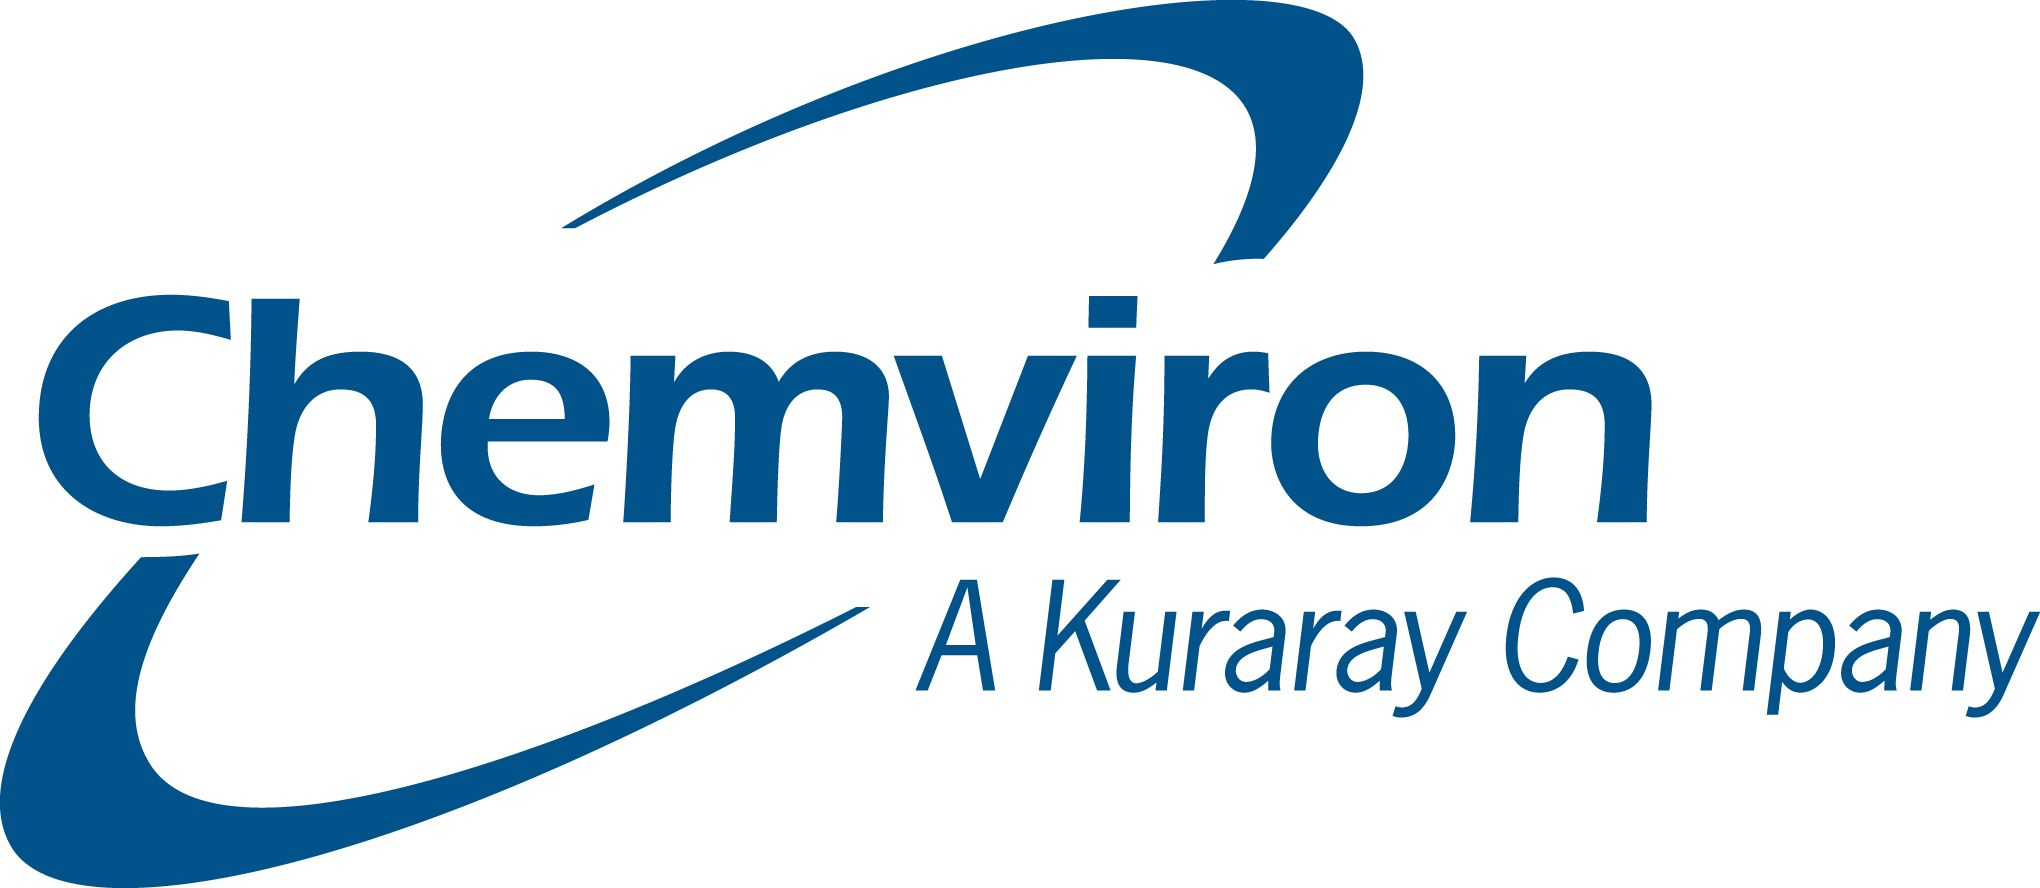 Chemviron_kuraray_logo_new.jpg